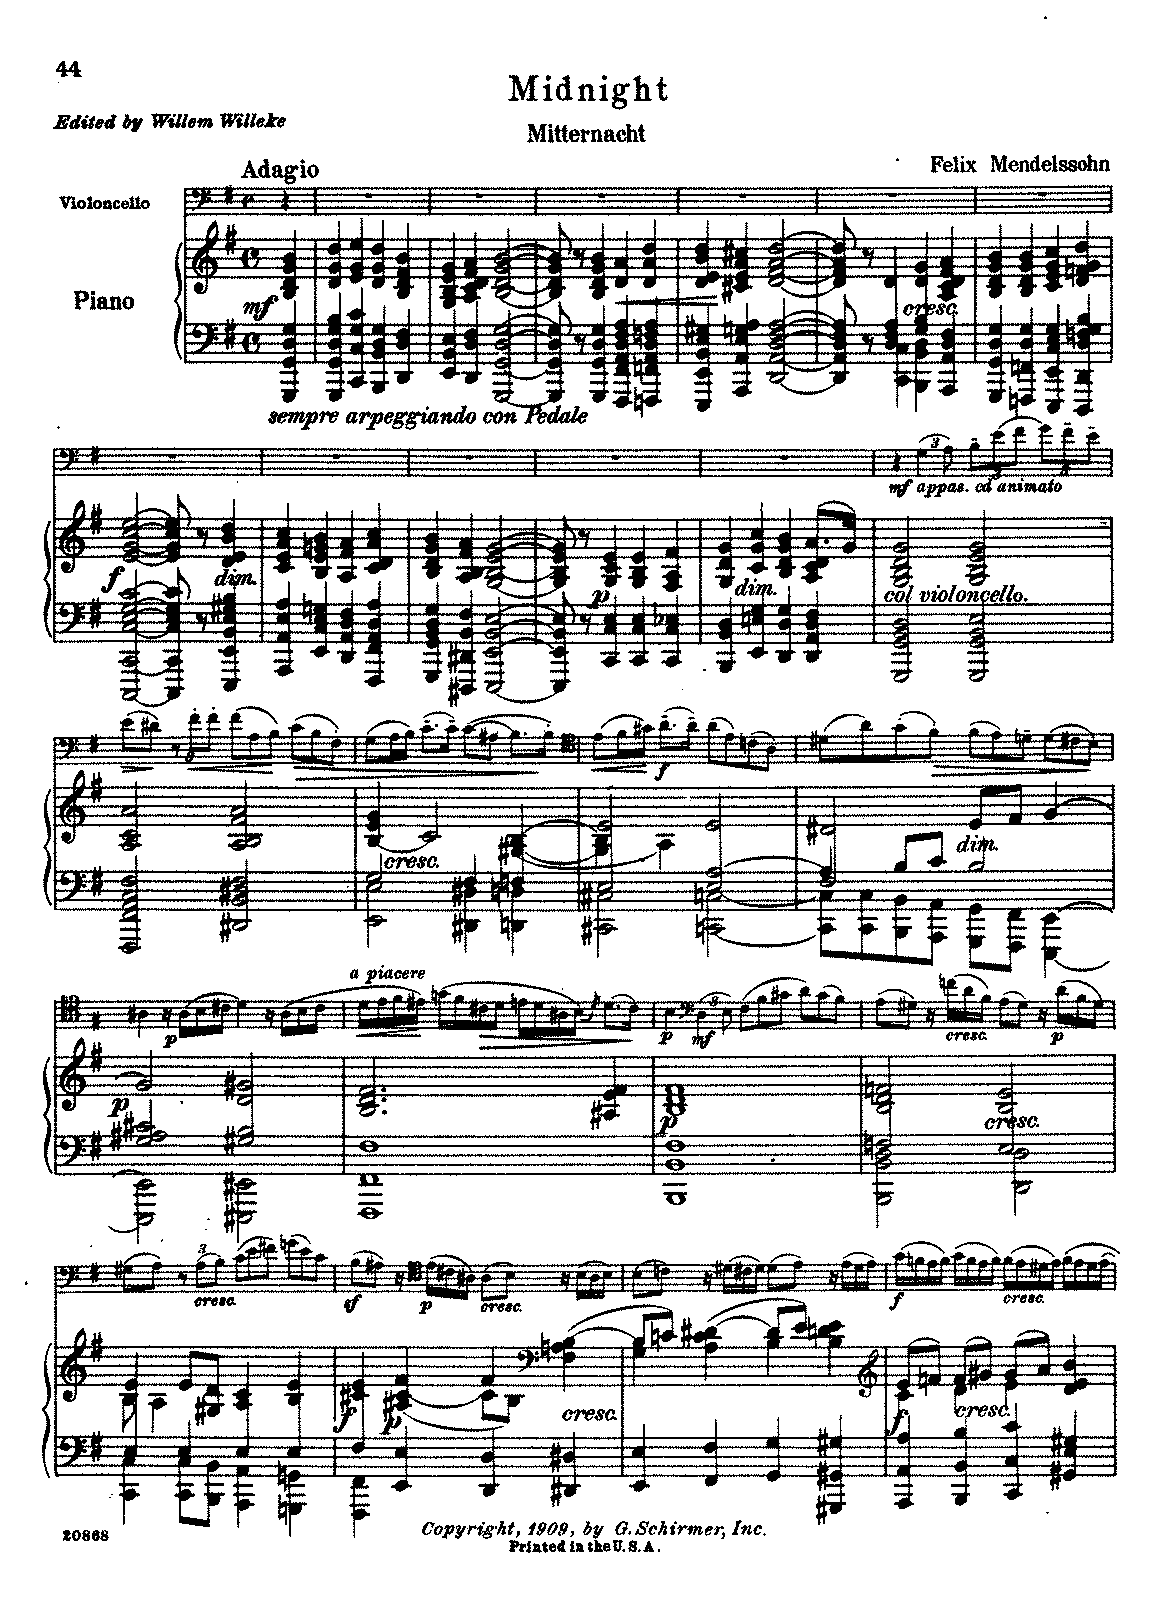 PMLP236800-Mendelssohn - Midnight Mitternacht (Willeke) for cello and piano.pdf